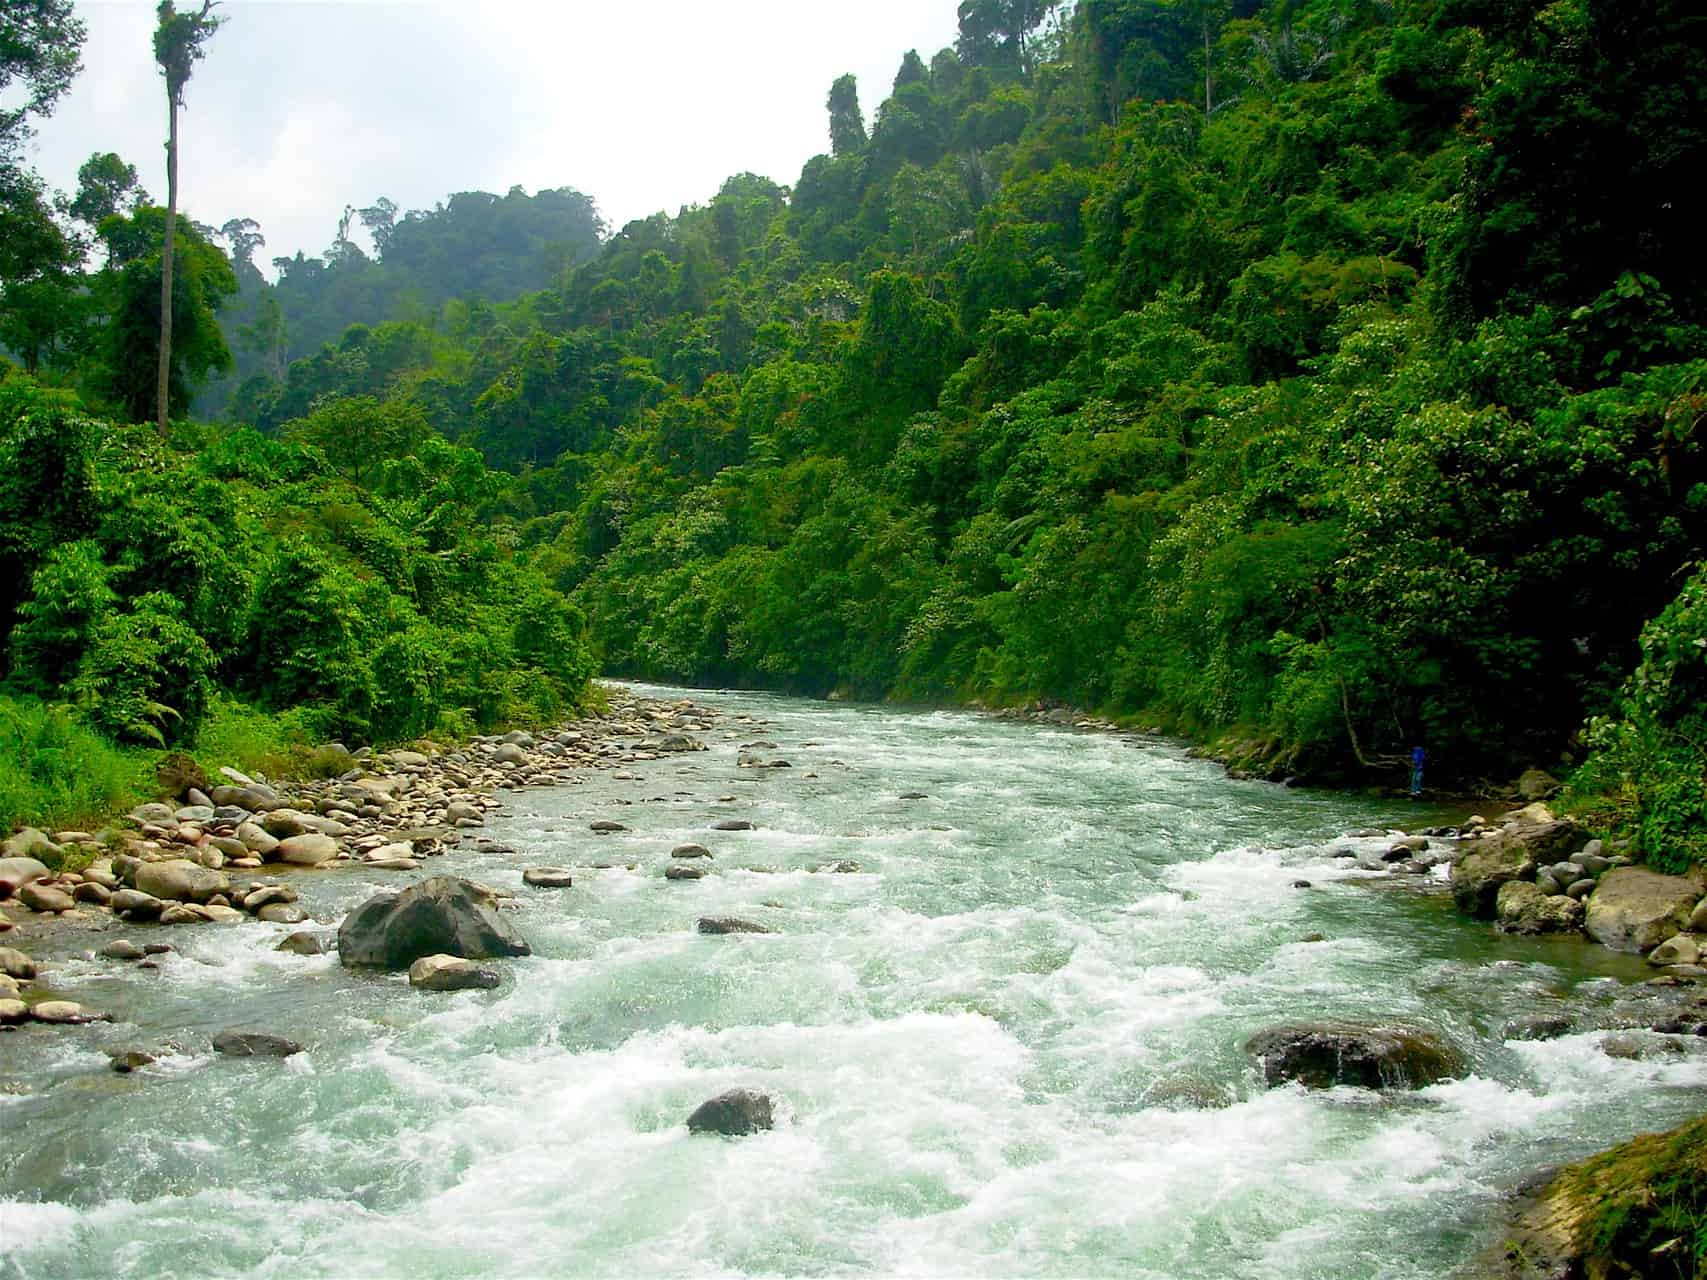 JUNGLE TREKKING - SUMATRA ECOTRAVEL - BUKIT LAWANG